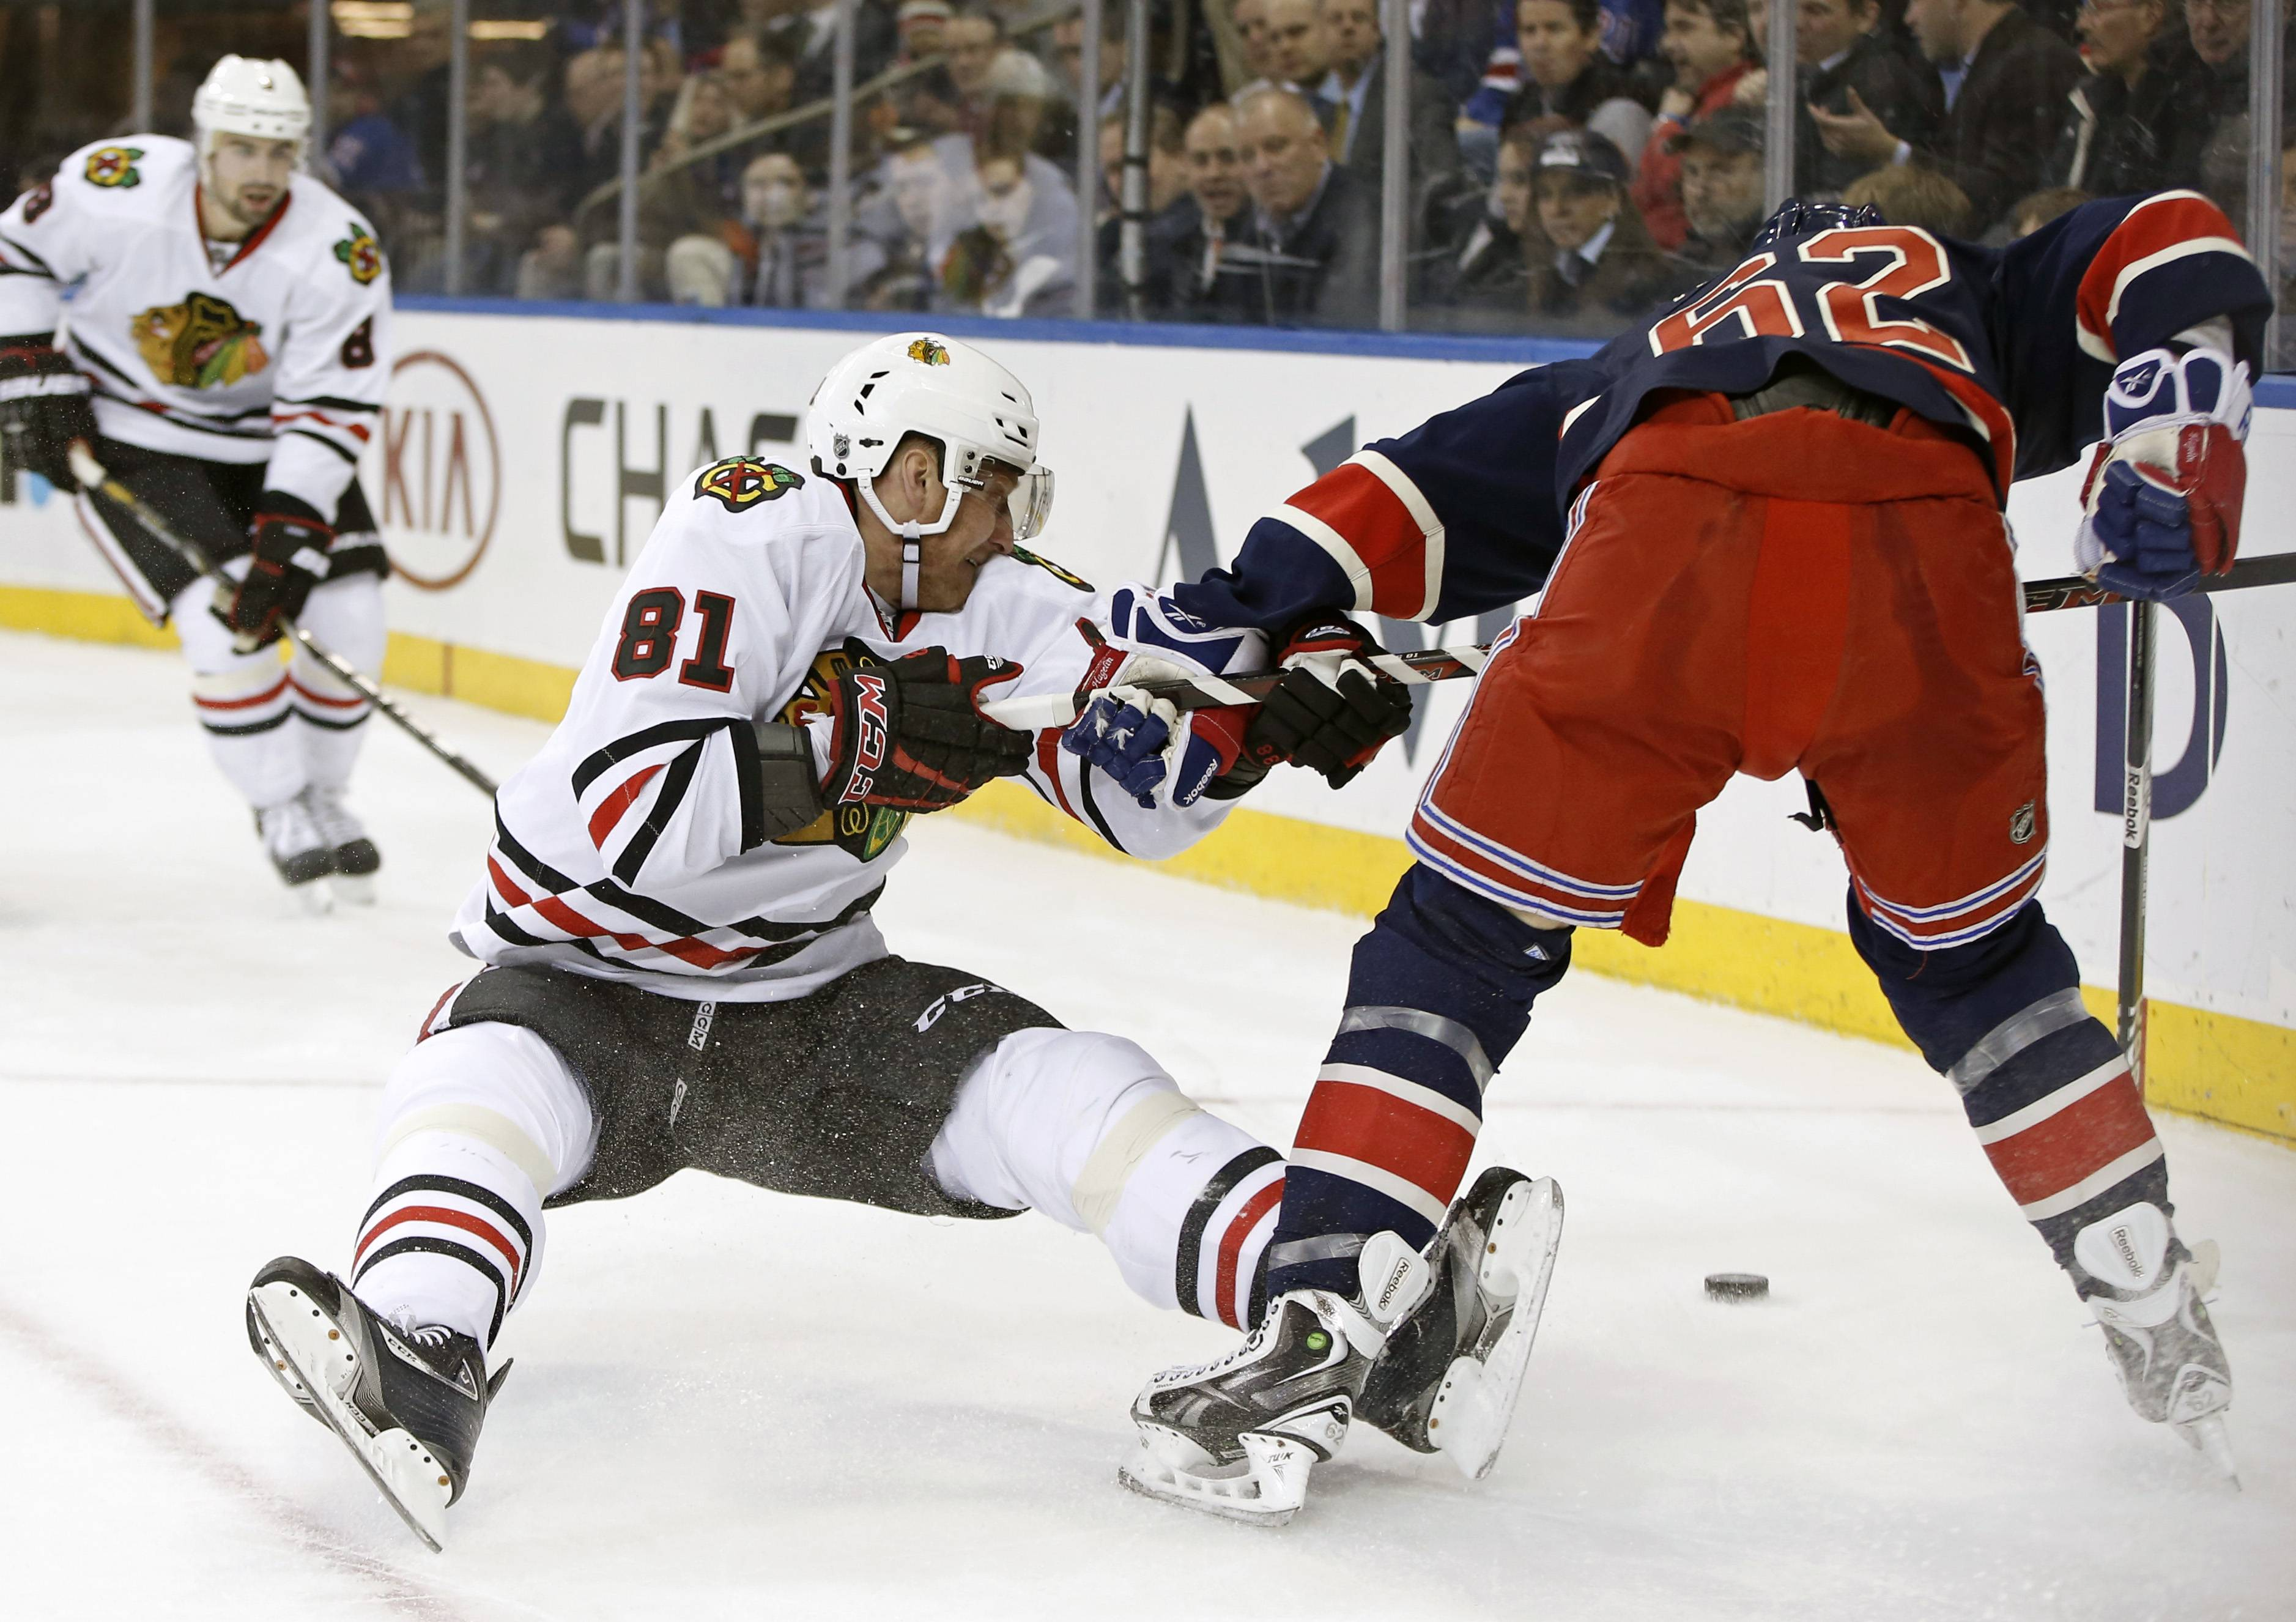 Marian Hossa and the Hawks took quite a tumble against Carl Hagelin and the Rangers on Thursday at Madison Square Garden.